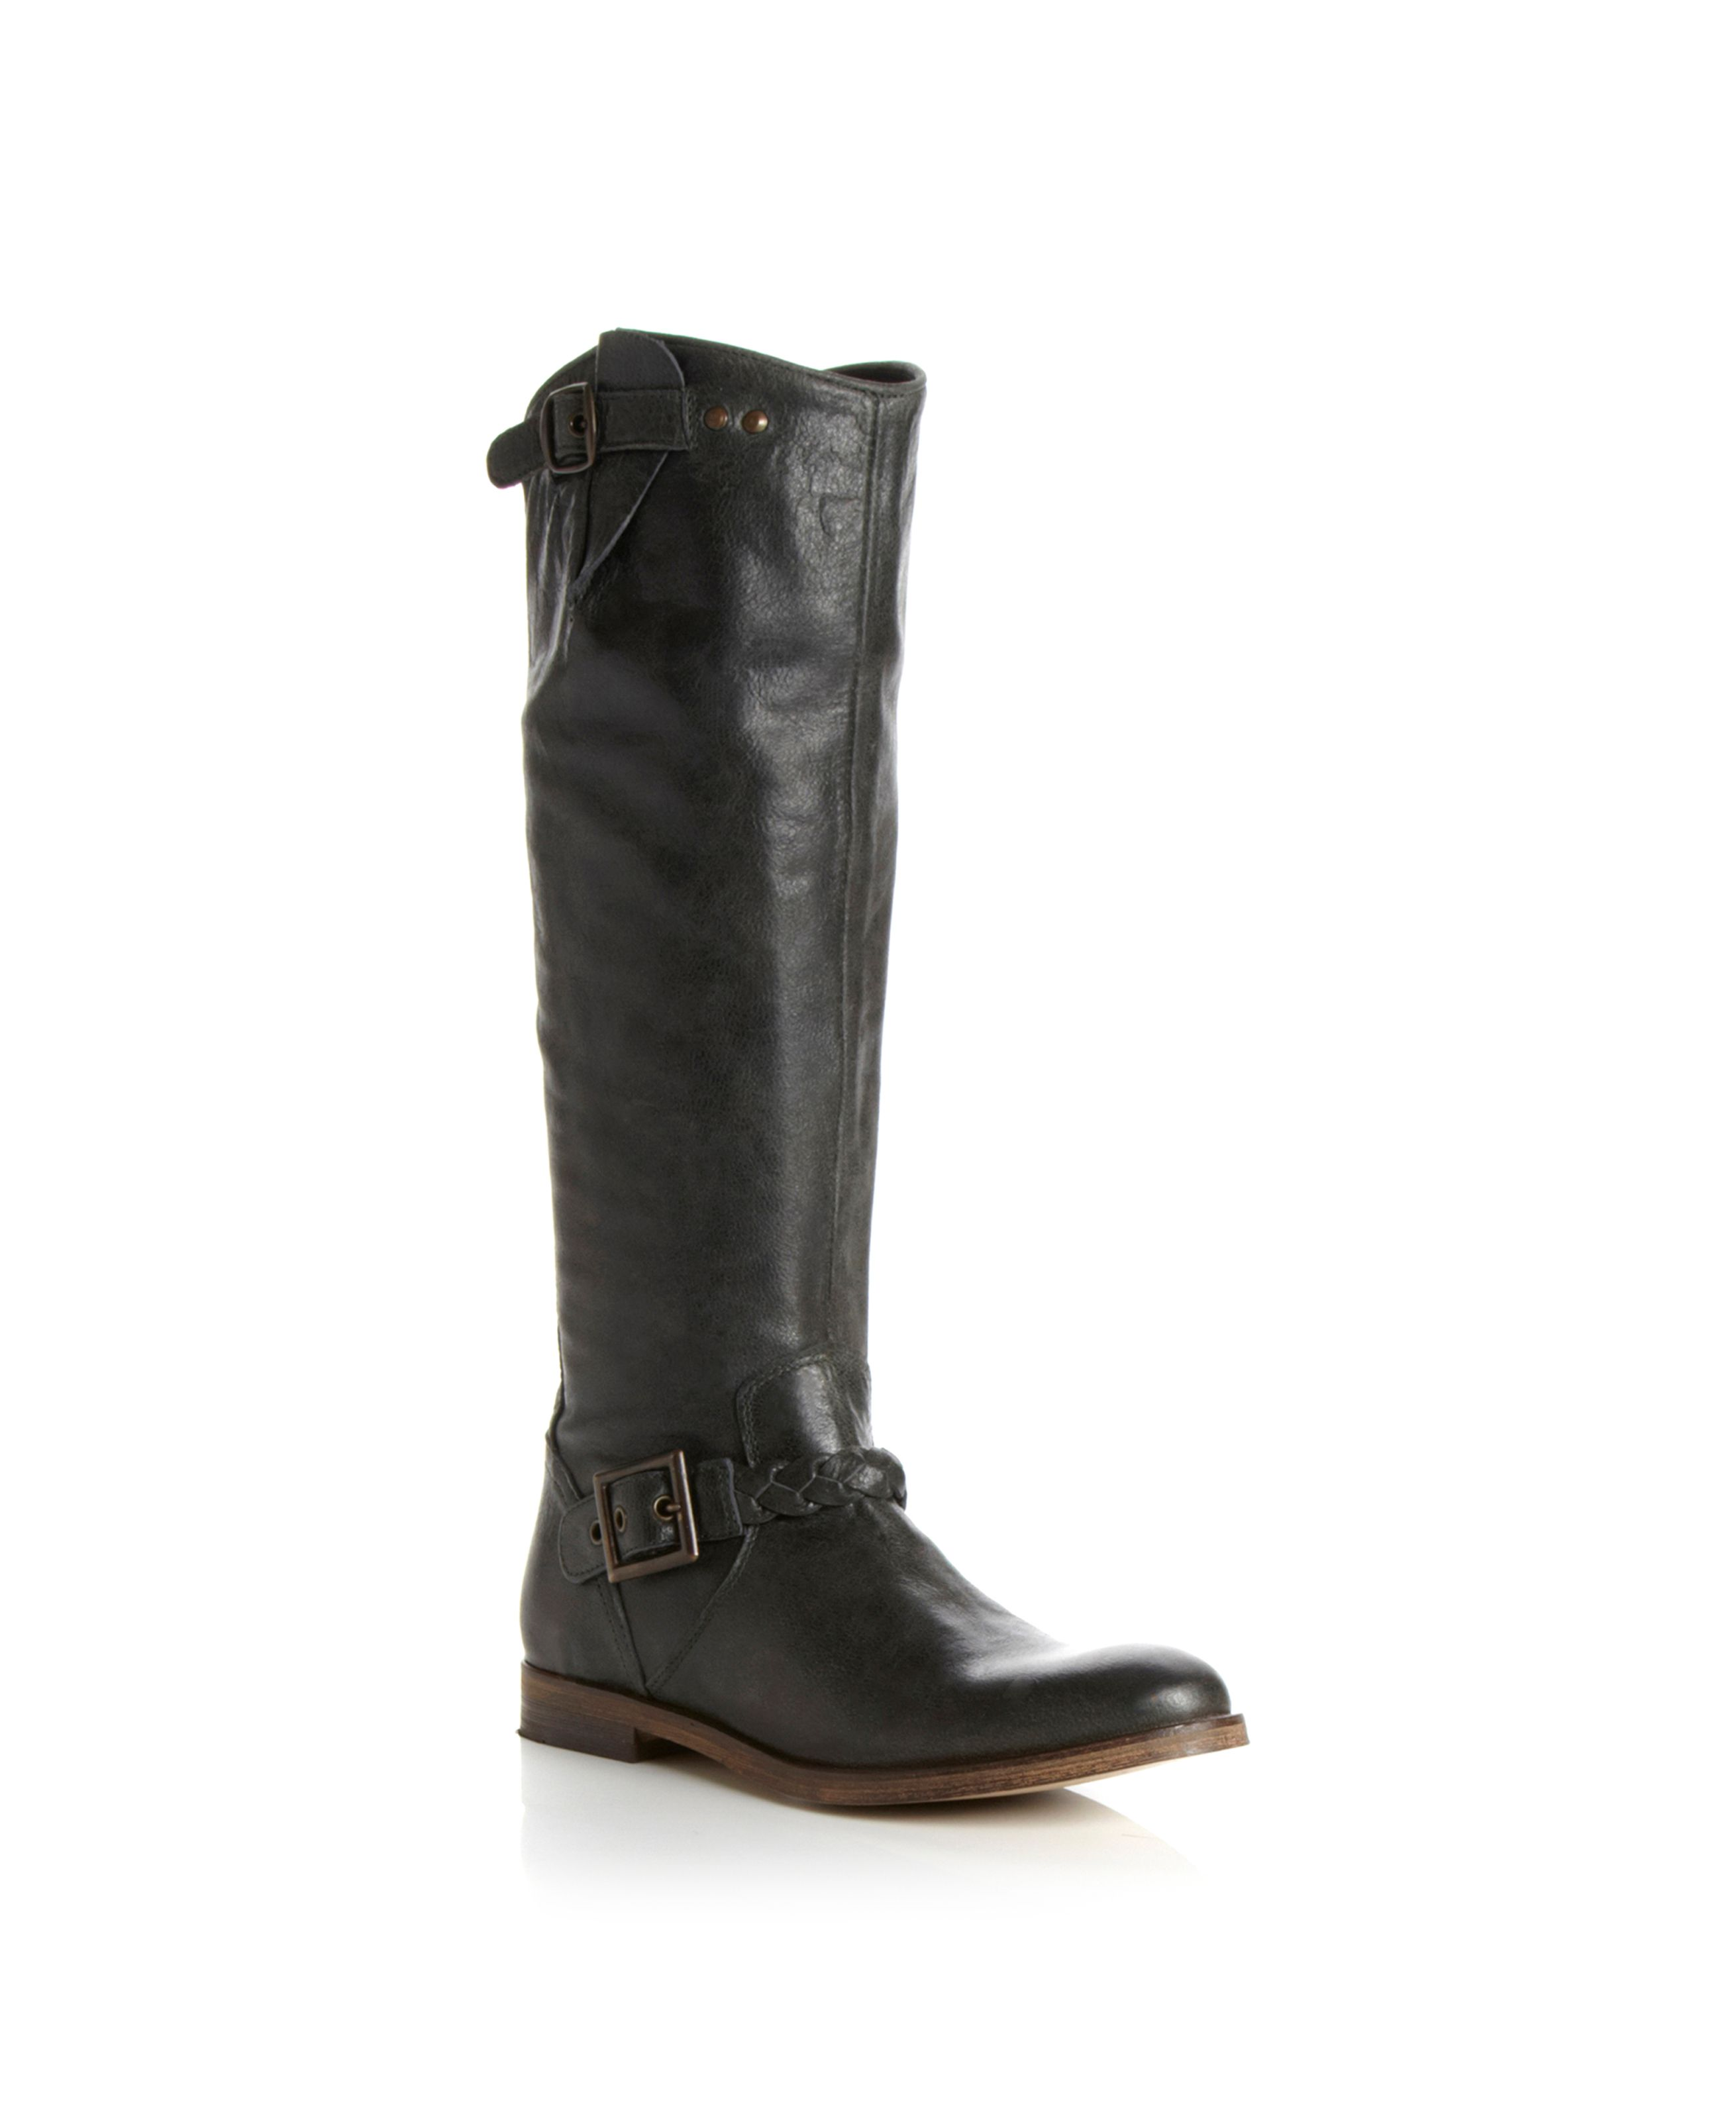 Tyler Plait Buckle High Leg Boots